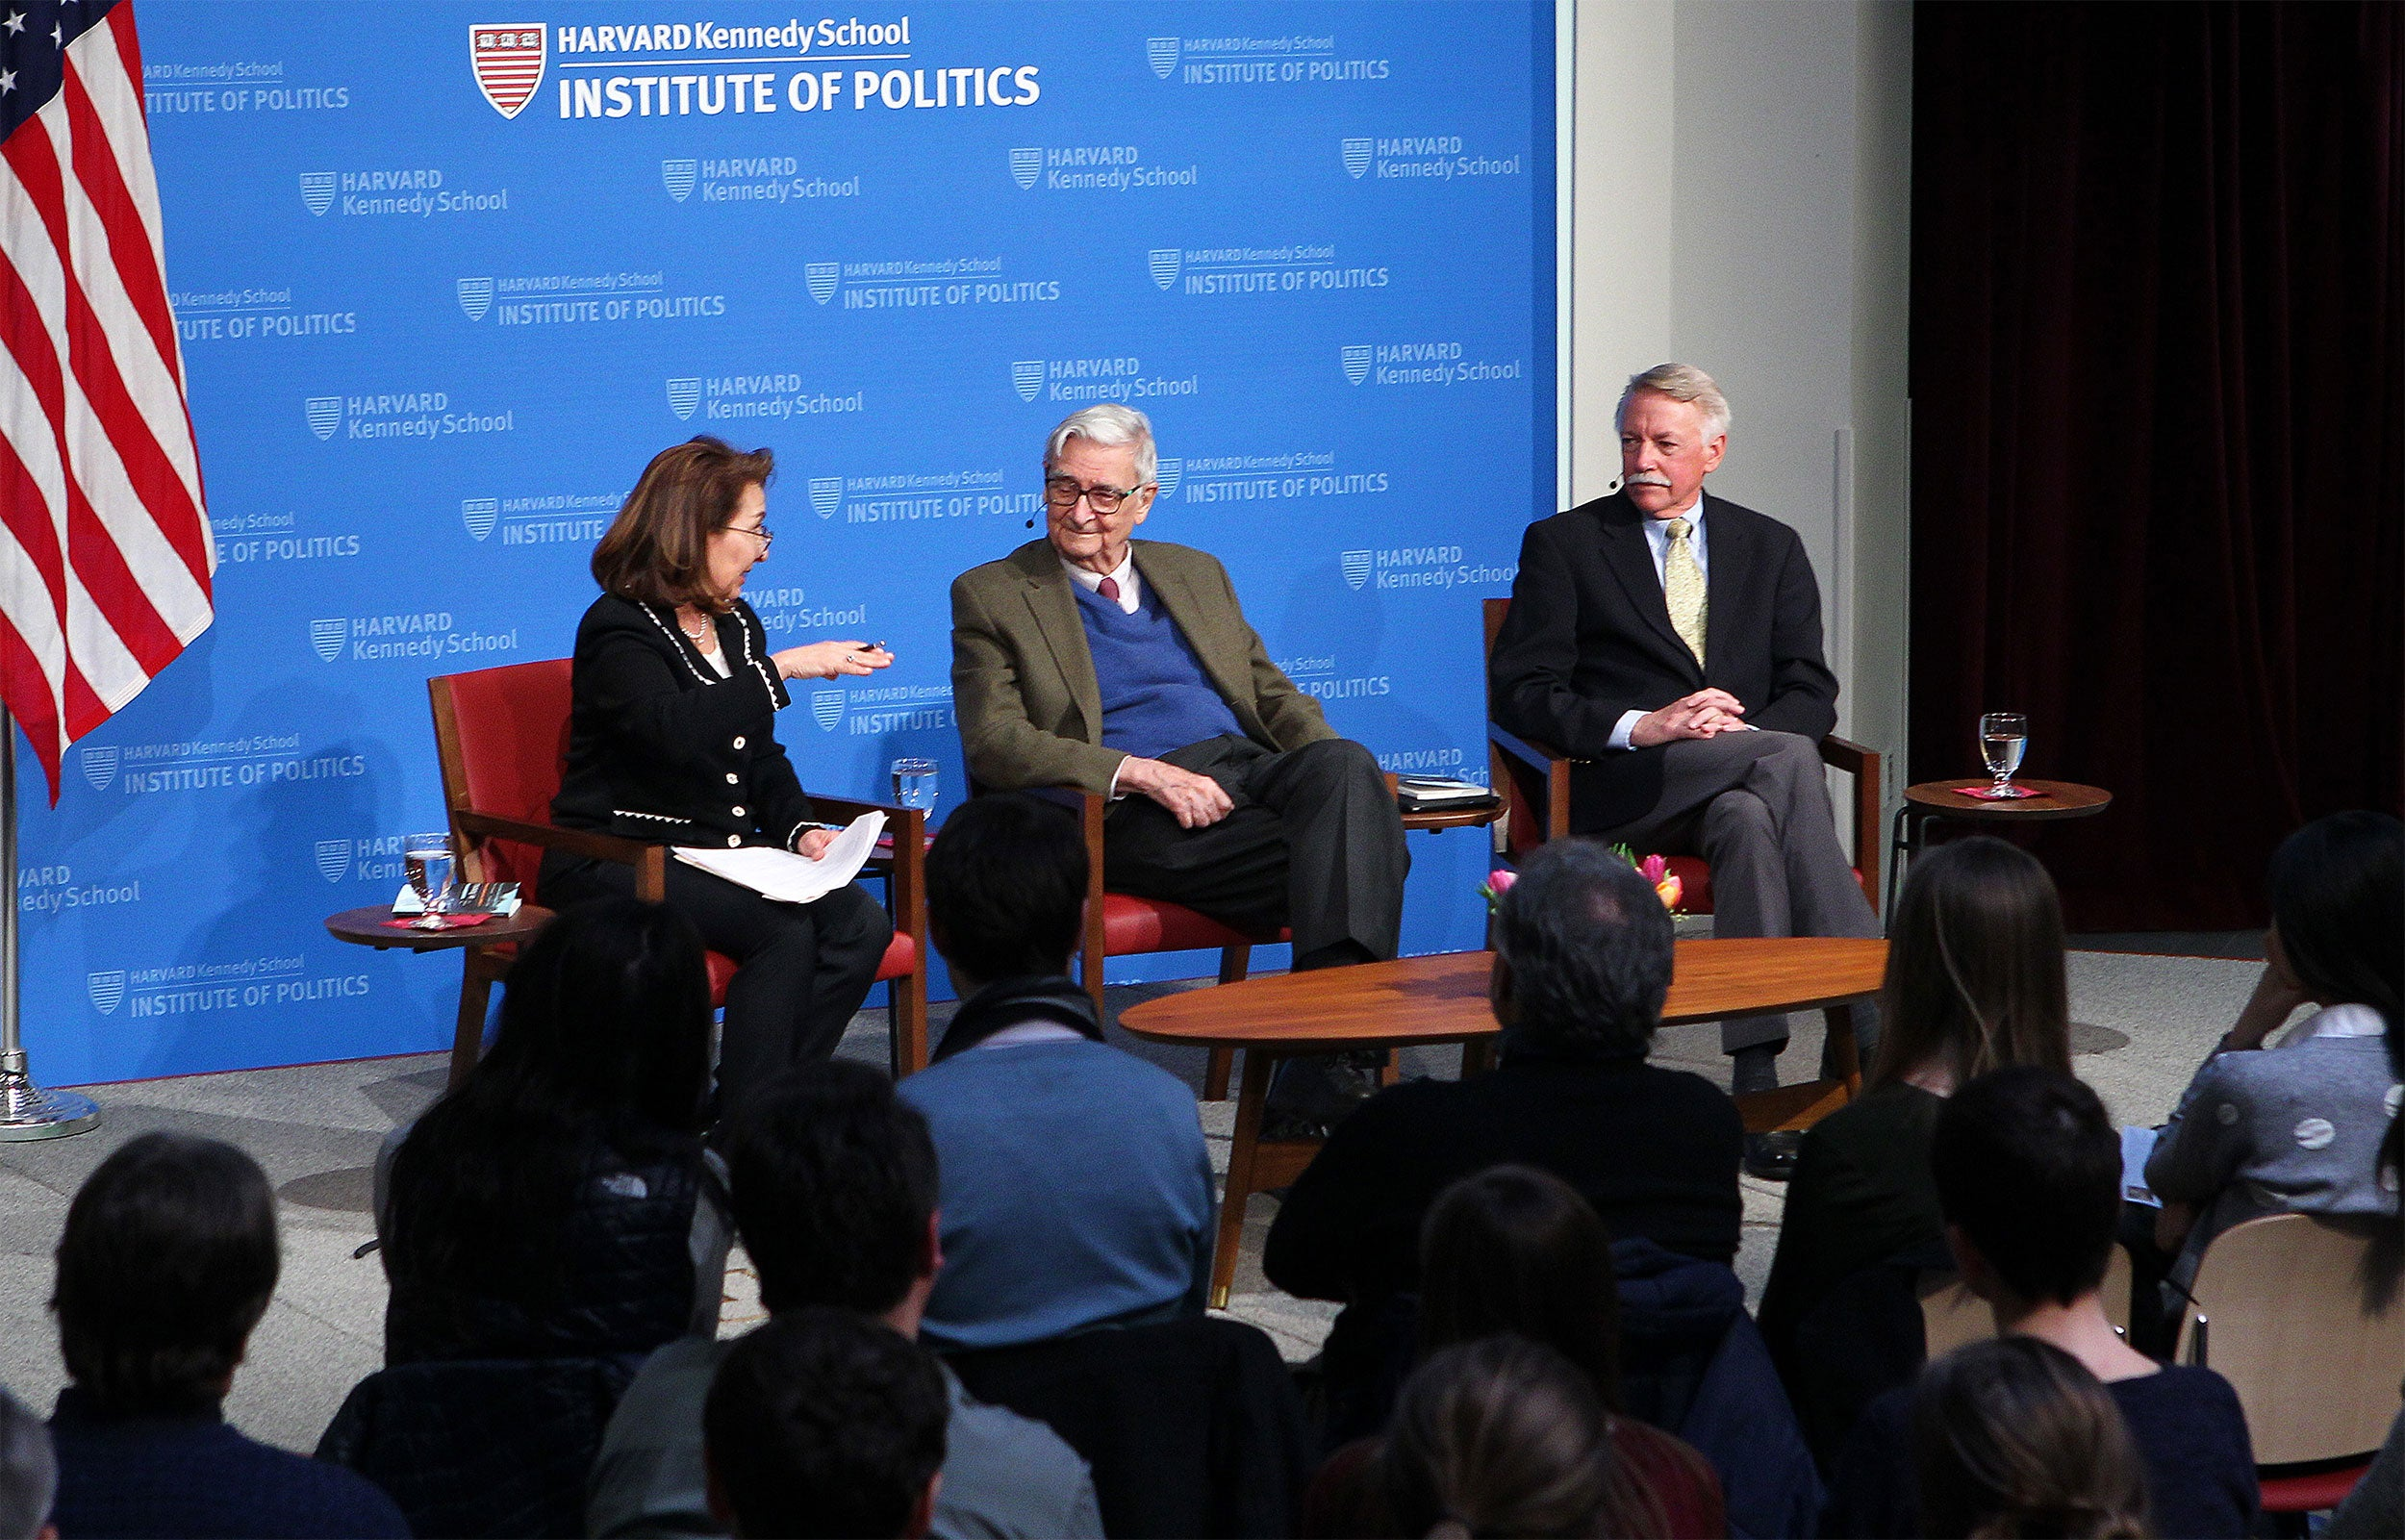 Moderator Linda J. Bilmes (from left) discusses with Edward O. Wilson and Jonathan B. Jarvis about Wilson's proposal to set aside half the Earth's land and oceans for conservation.